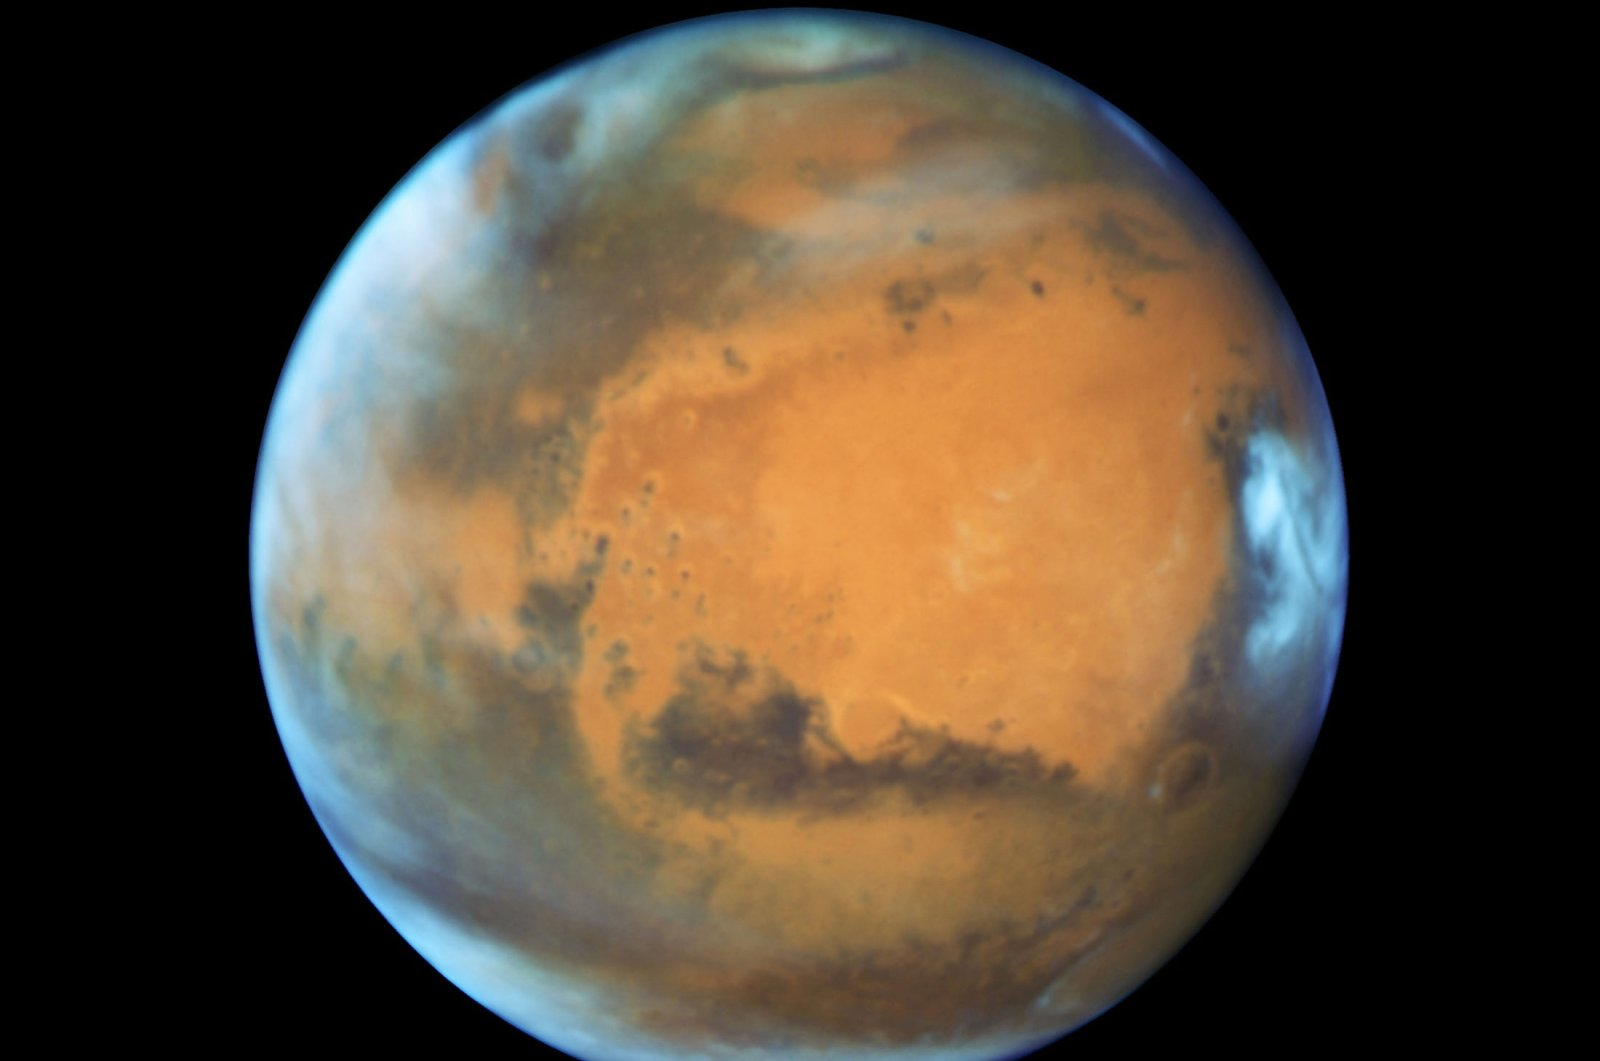 The planet Mars is shown in this NASA Hubble Space Telescope view taken May 12, 2016, when it was more than 80 million kilometers (50 million miles) from Earth. (NASA via Reuters)